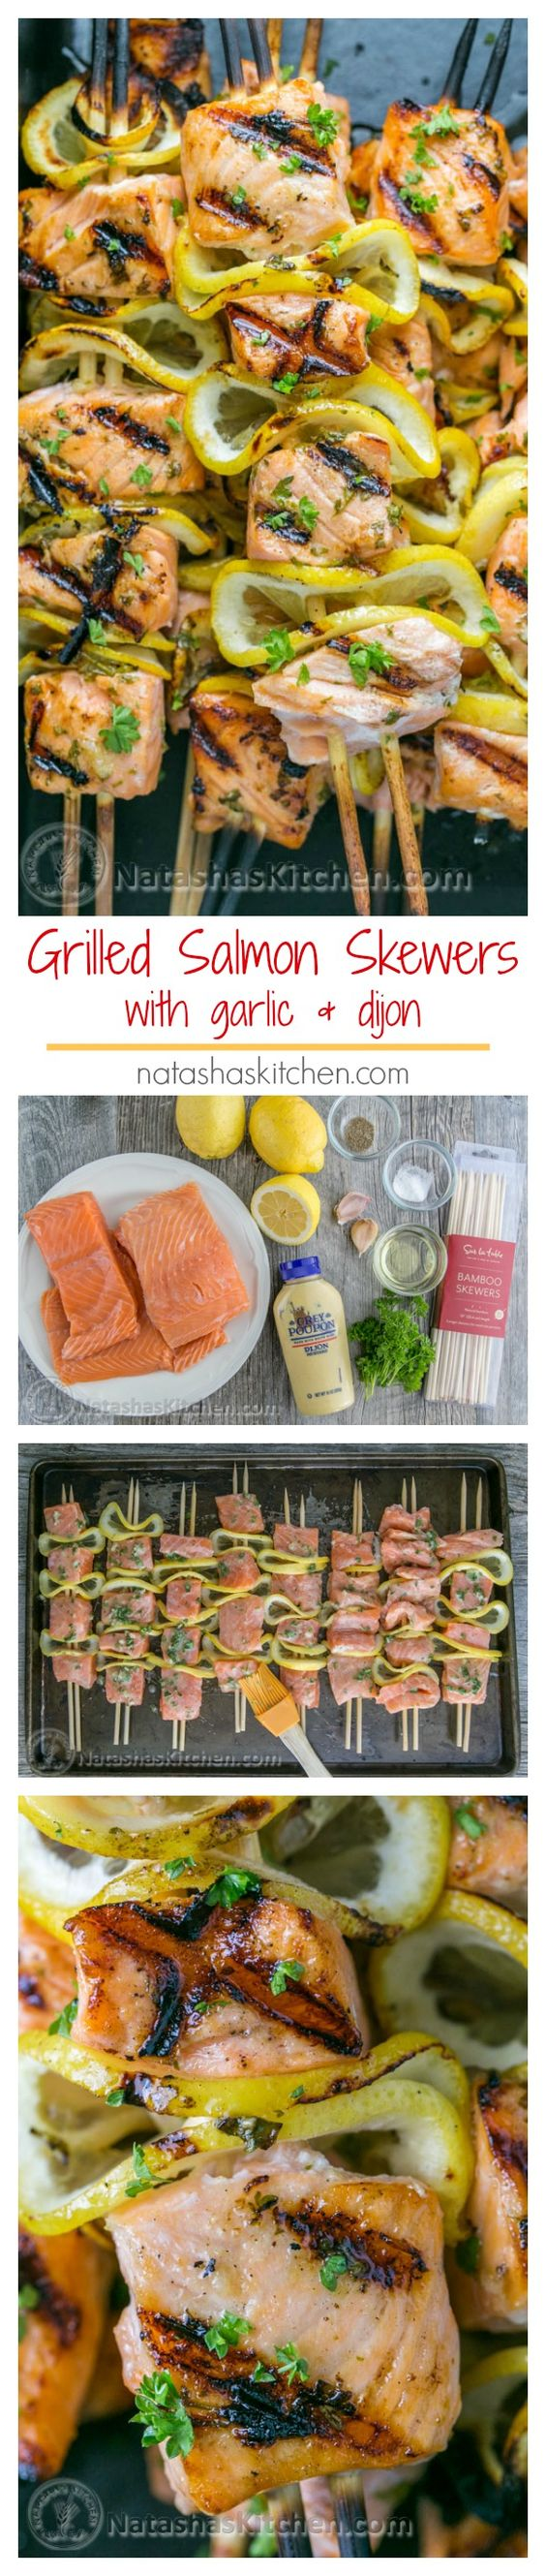 Easy grilled salmon skewers with garlic & dijon. Juicy with incredible flavor & takes less than 30 minutes. Great dinner idea.